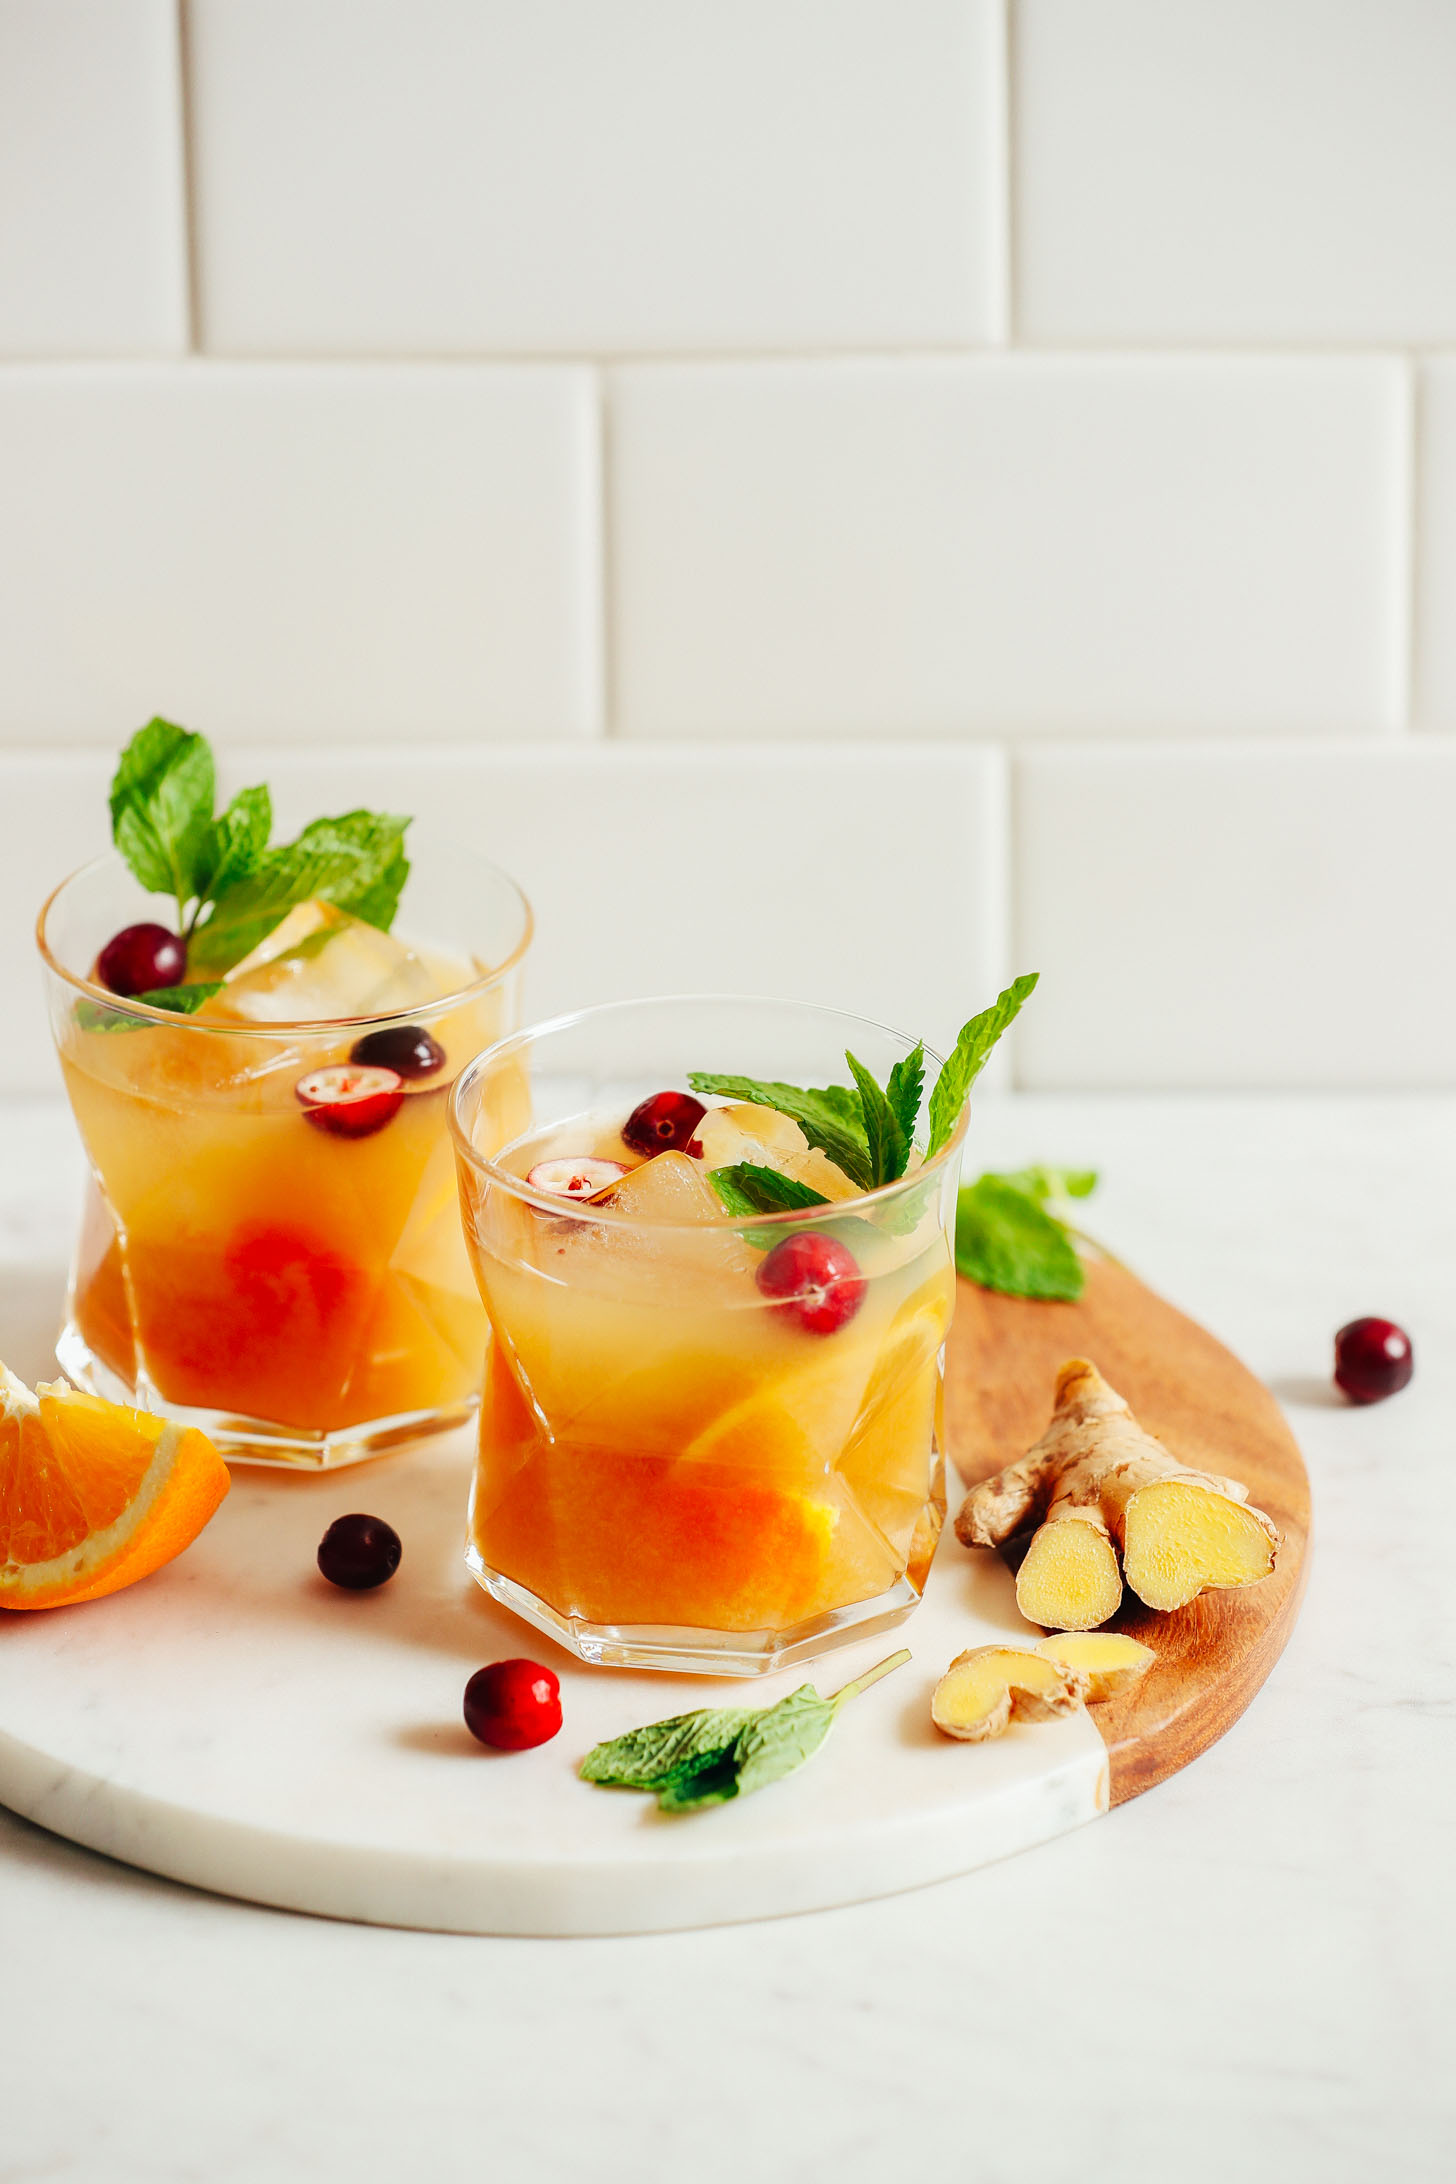 Two glasses of refreshing, naturally sweetened Orange Whiskey Gingers with Mint